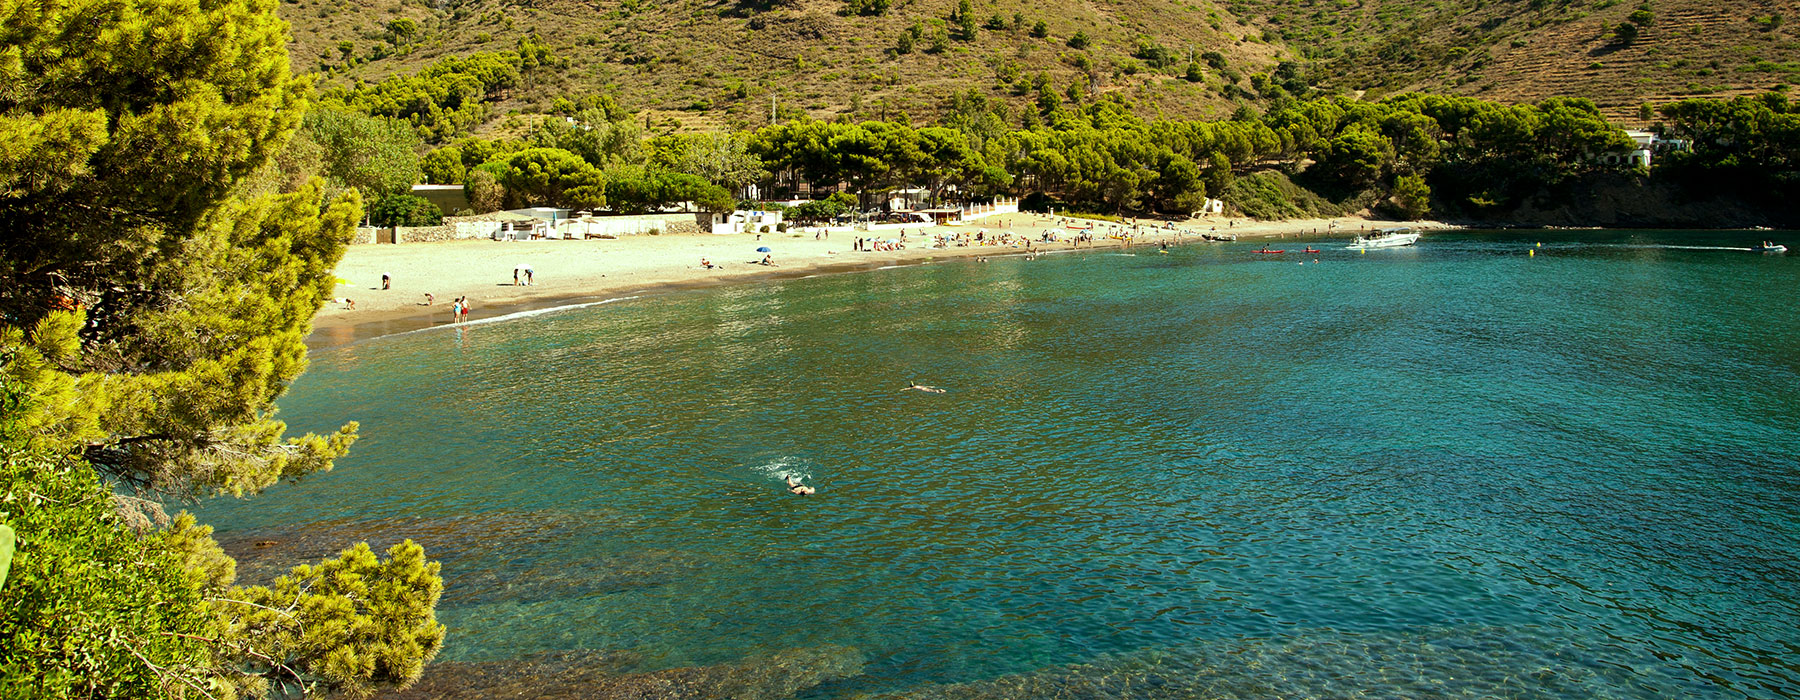 cala-montjoi-surroundings-beach-banner-home